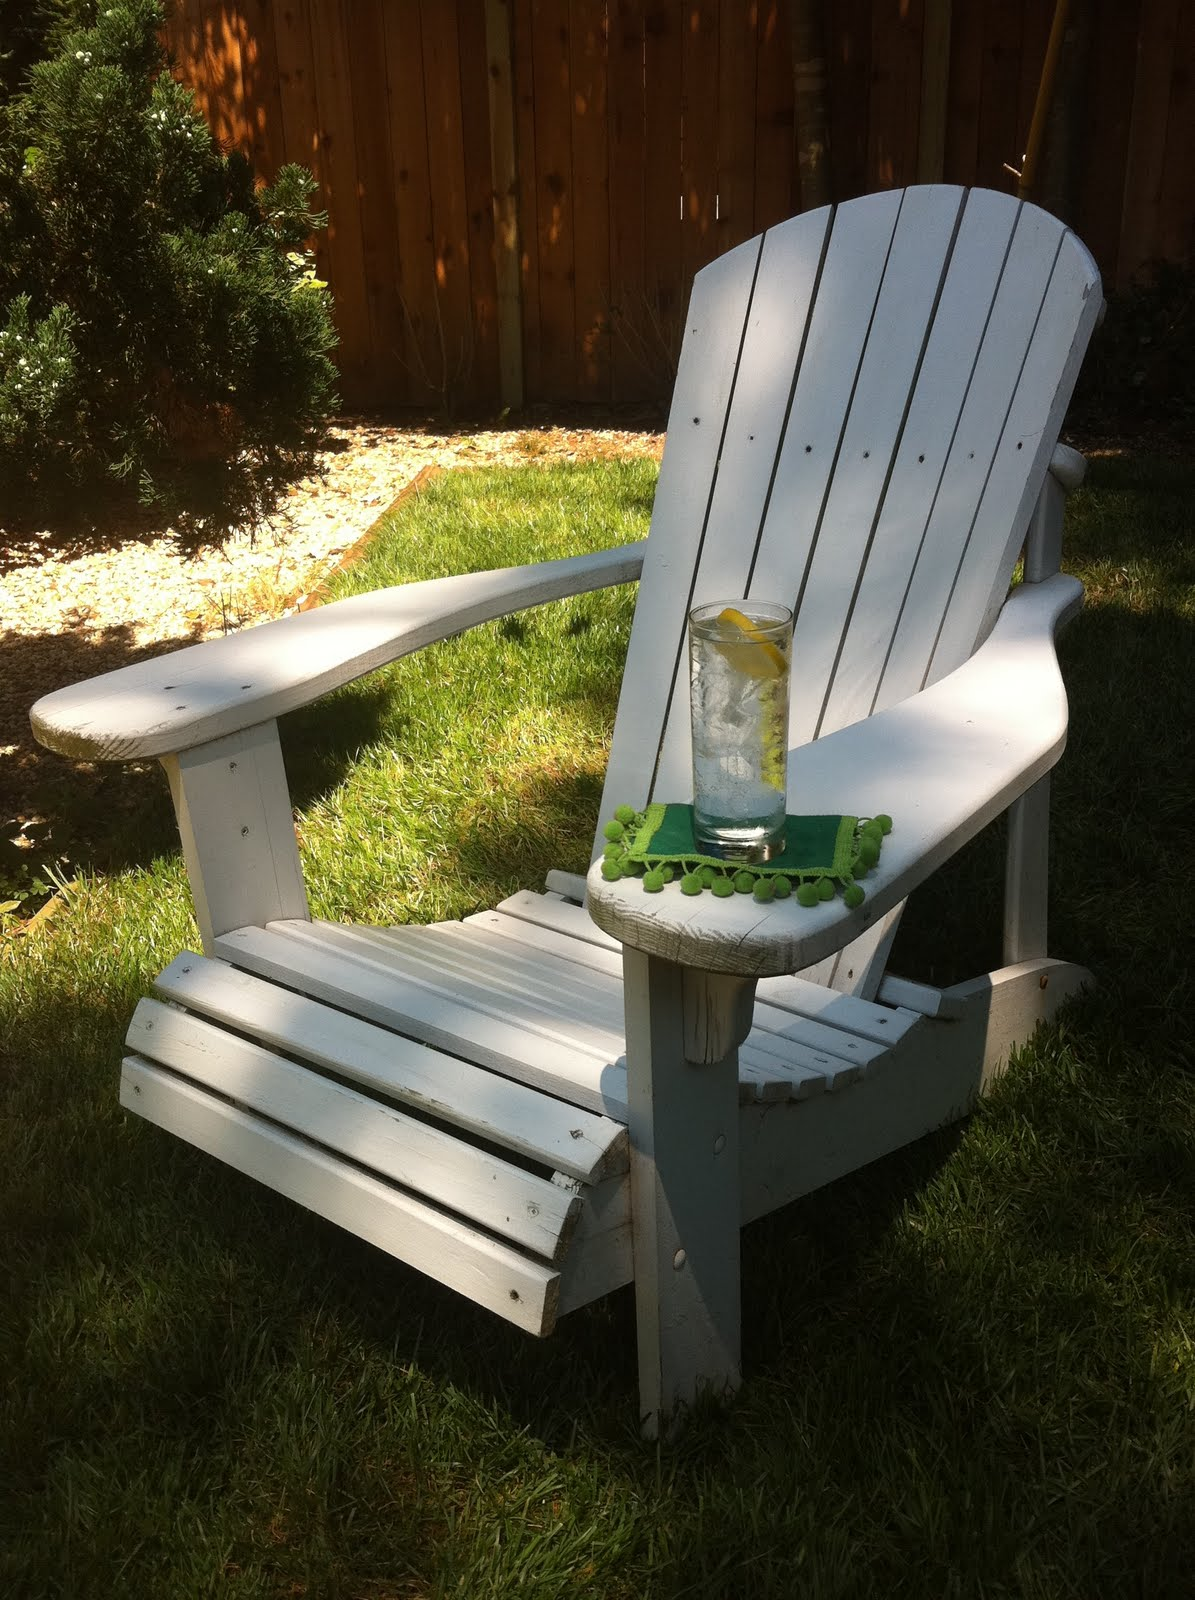 Plans For Adirondack Chairs Build Plans Upright Adirondack Chair Plan Wooden